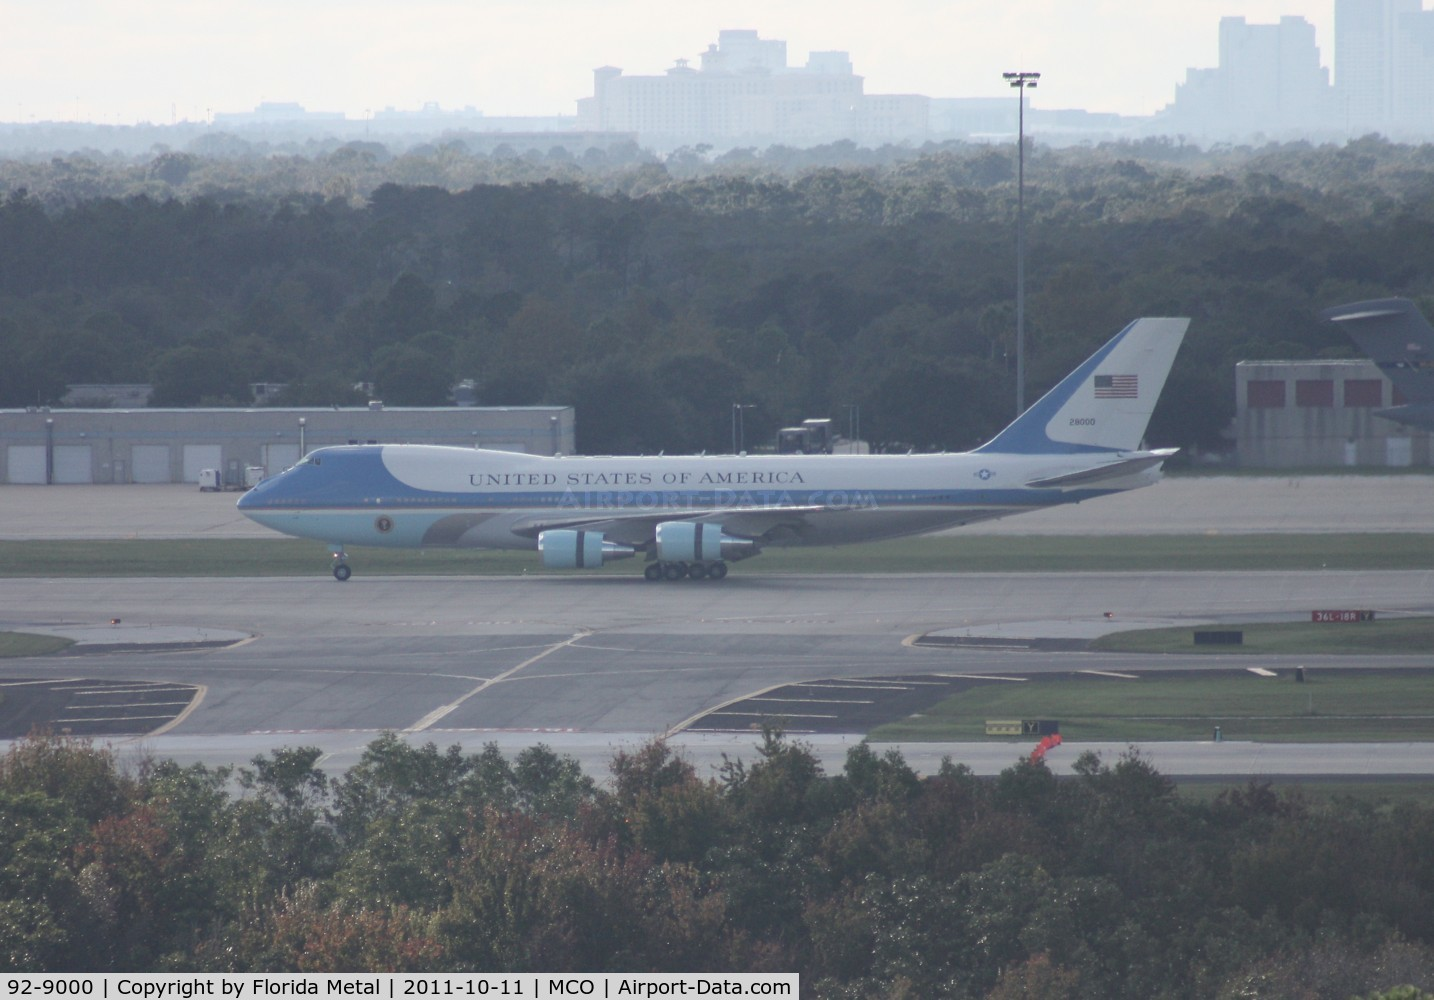 92-9000, 1987 Boeing VC-25A C/N 23825, Air Force One distant shot from roof top